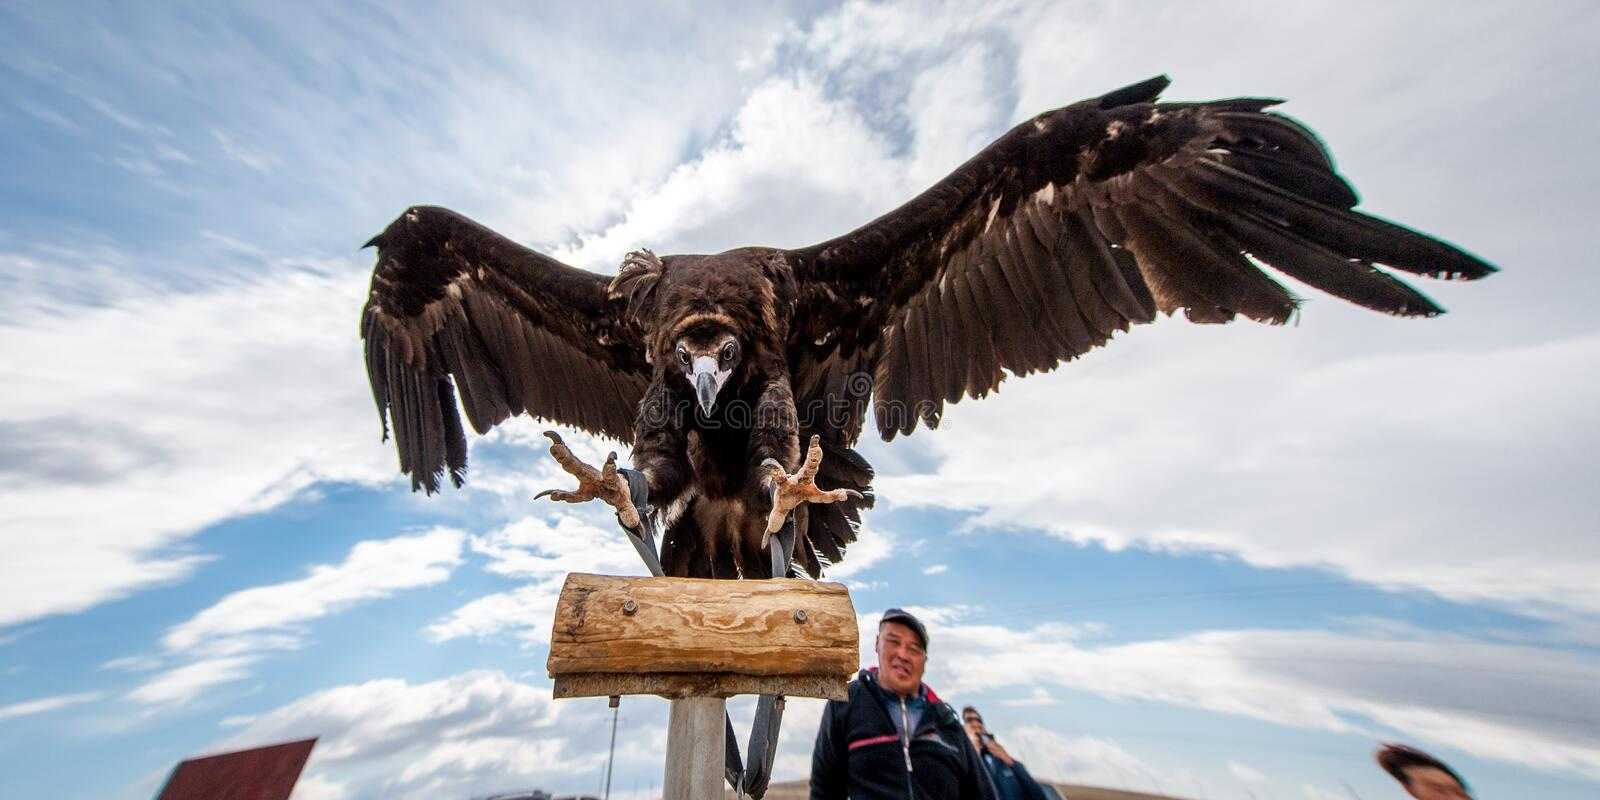 MONGOLIA - May 17, 2015: Specially trained eagle for hunting in mongolian desert near Ulaan-Baator. MONGOLIA - May 17, 2015: Specially trained eagle for hunting stock image